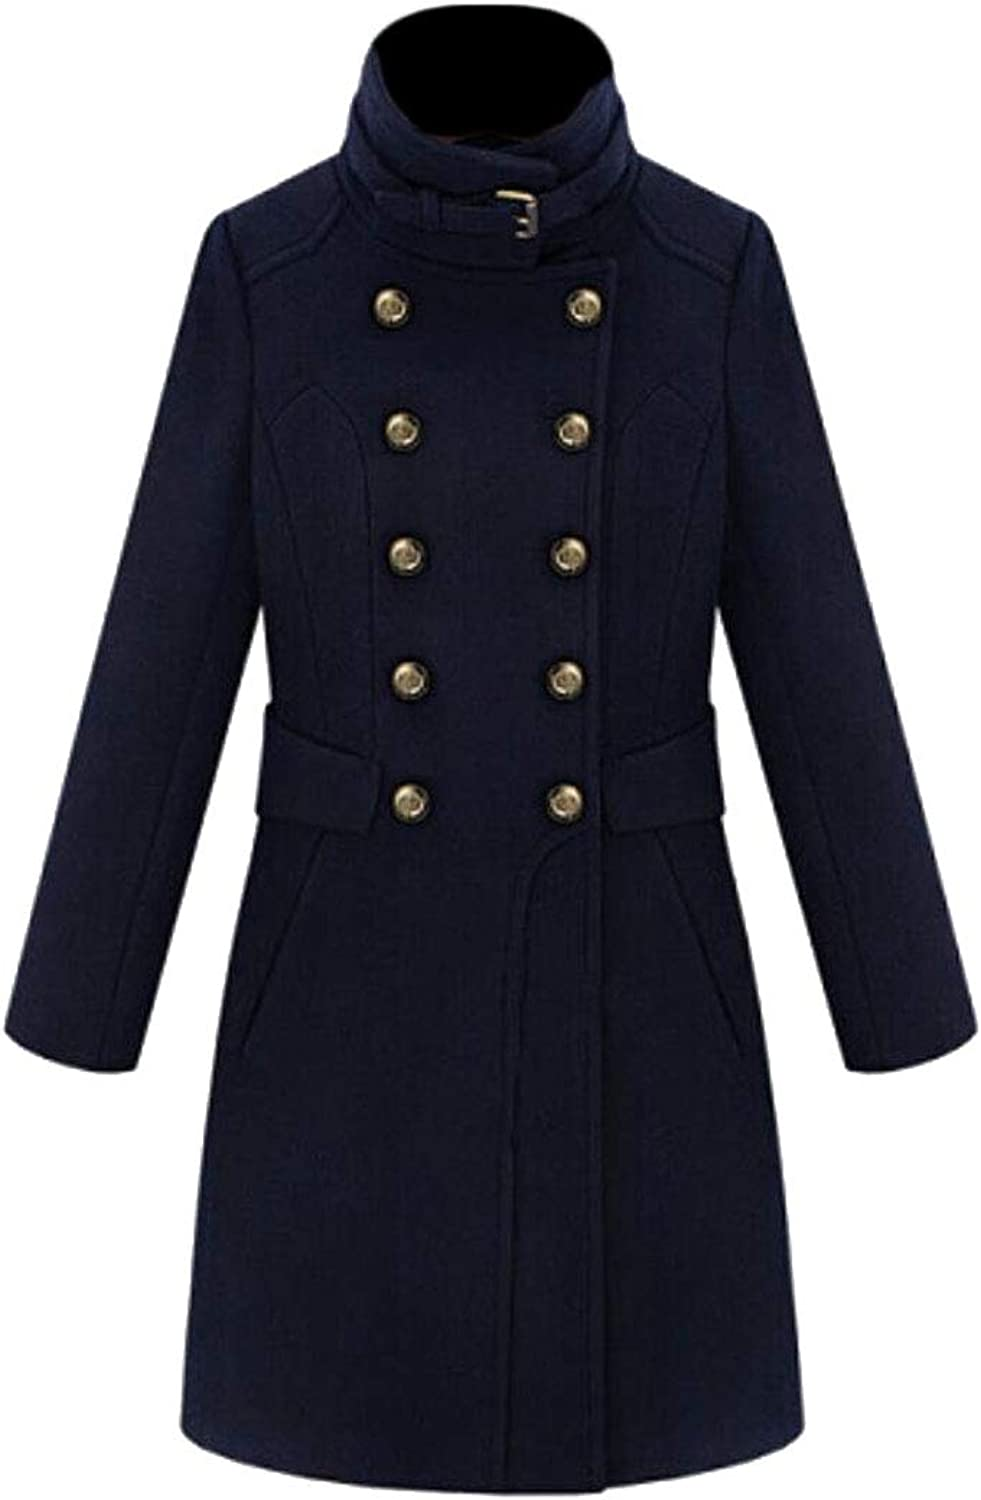 Esast Women's Laple Winter Classic Double Breasted Long Trench Coat Overcoat